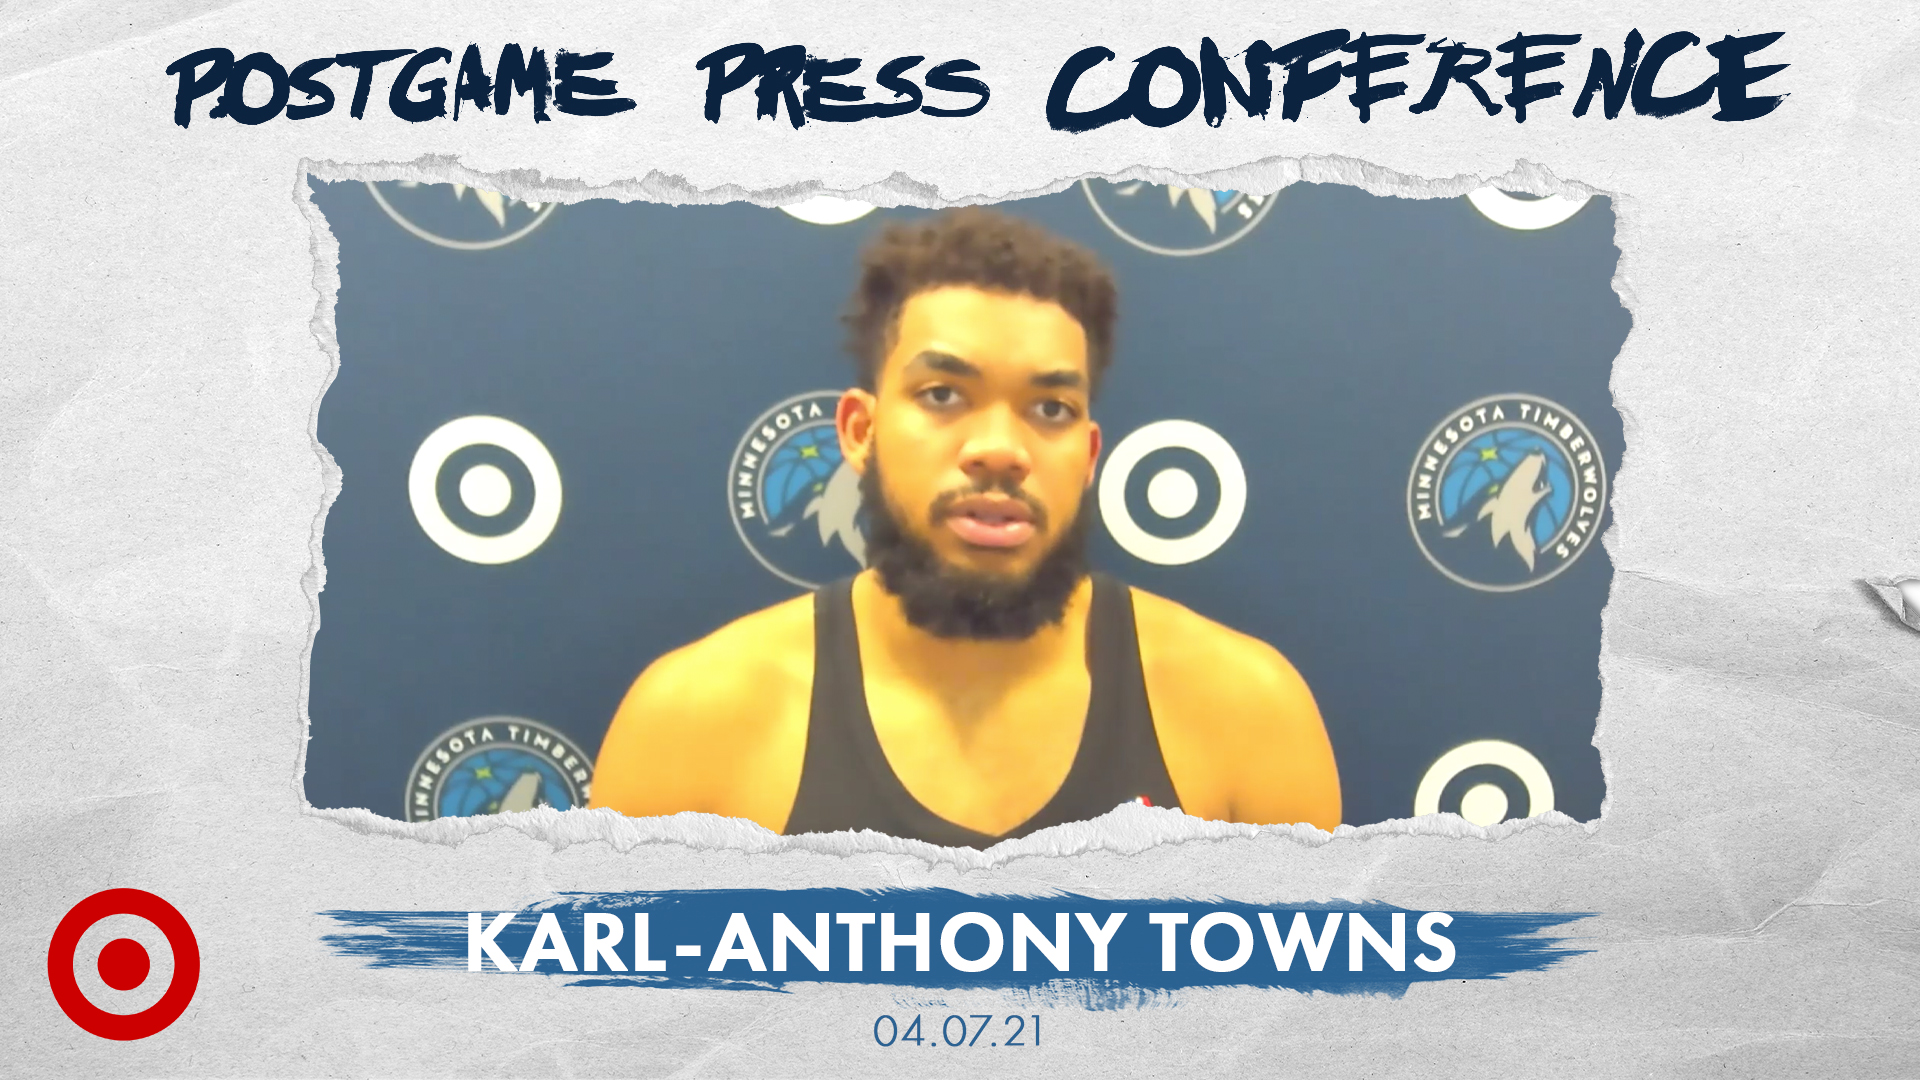 Karl-Anthony Towns Postgame Press Conference - April 7, 2021